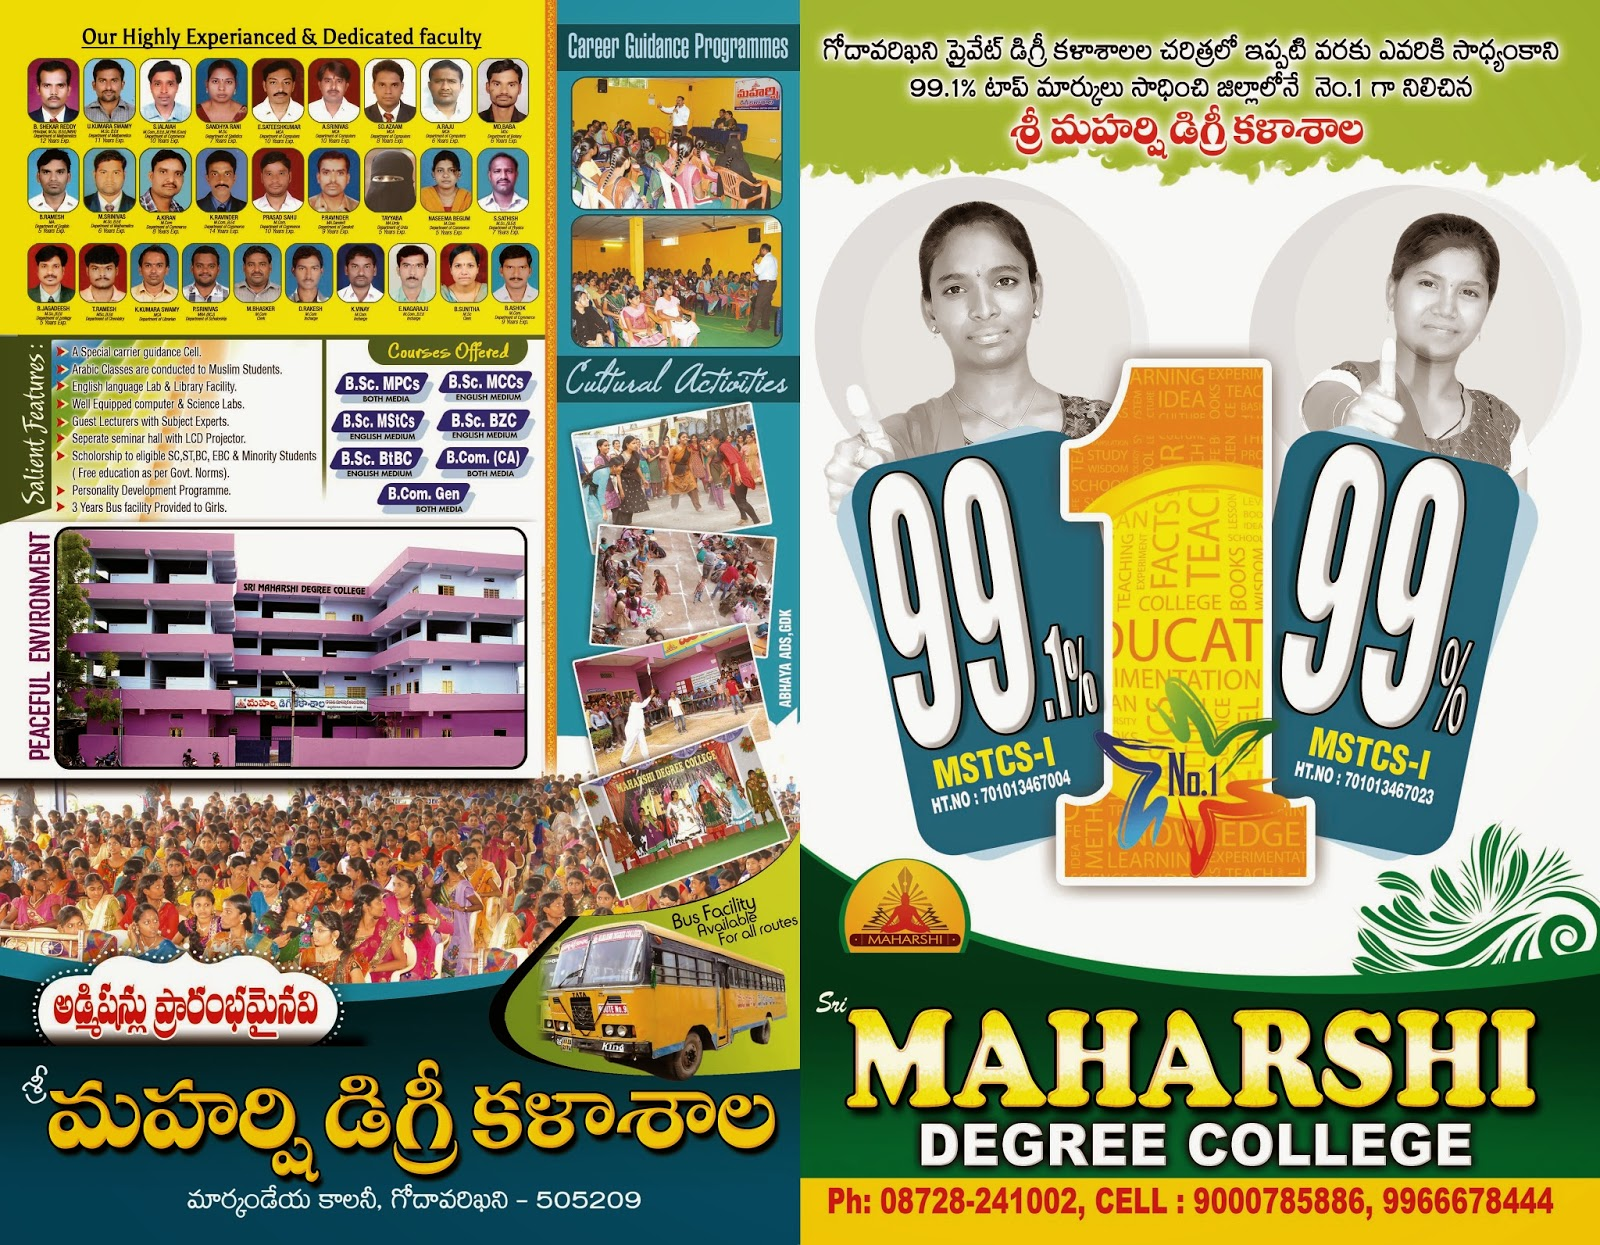 Maharshi degree college brochure design psd template for College brochure templates free download